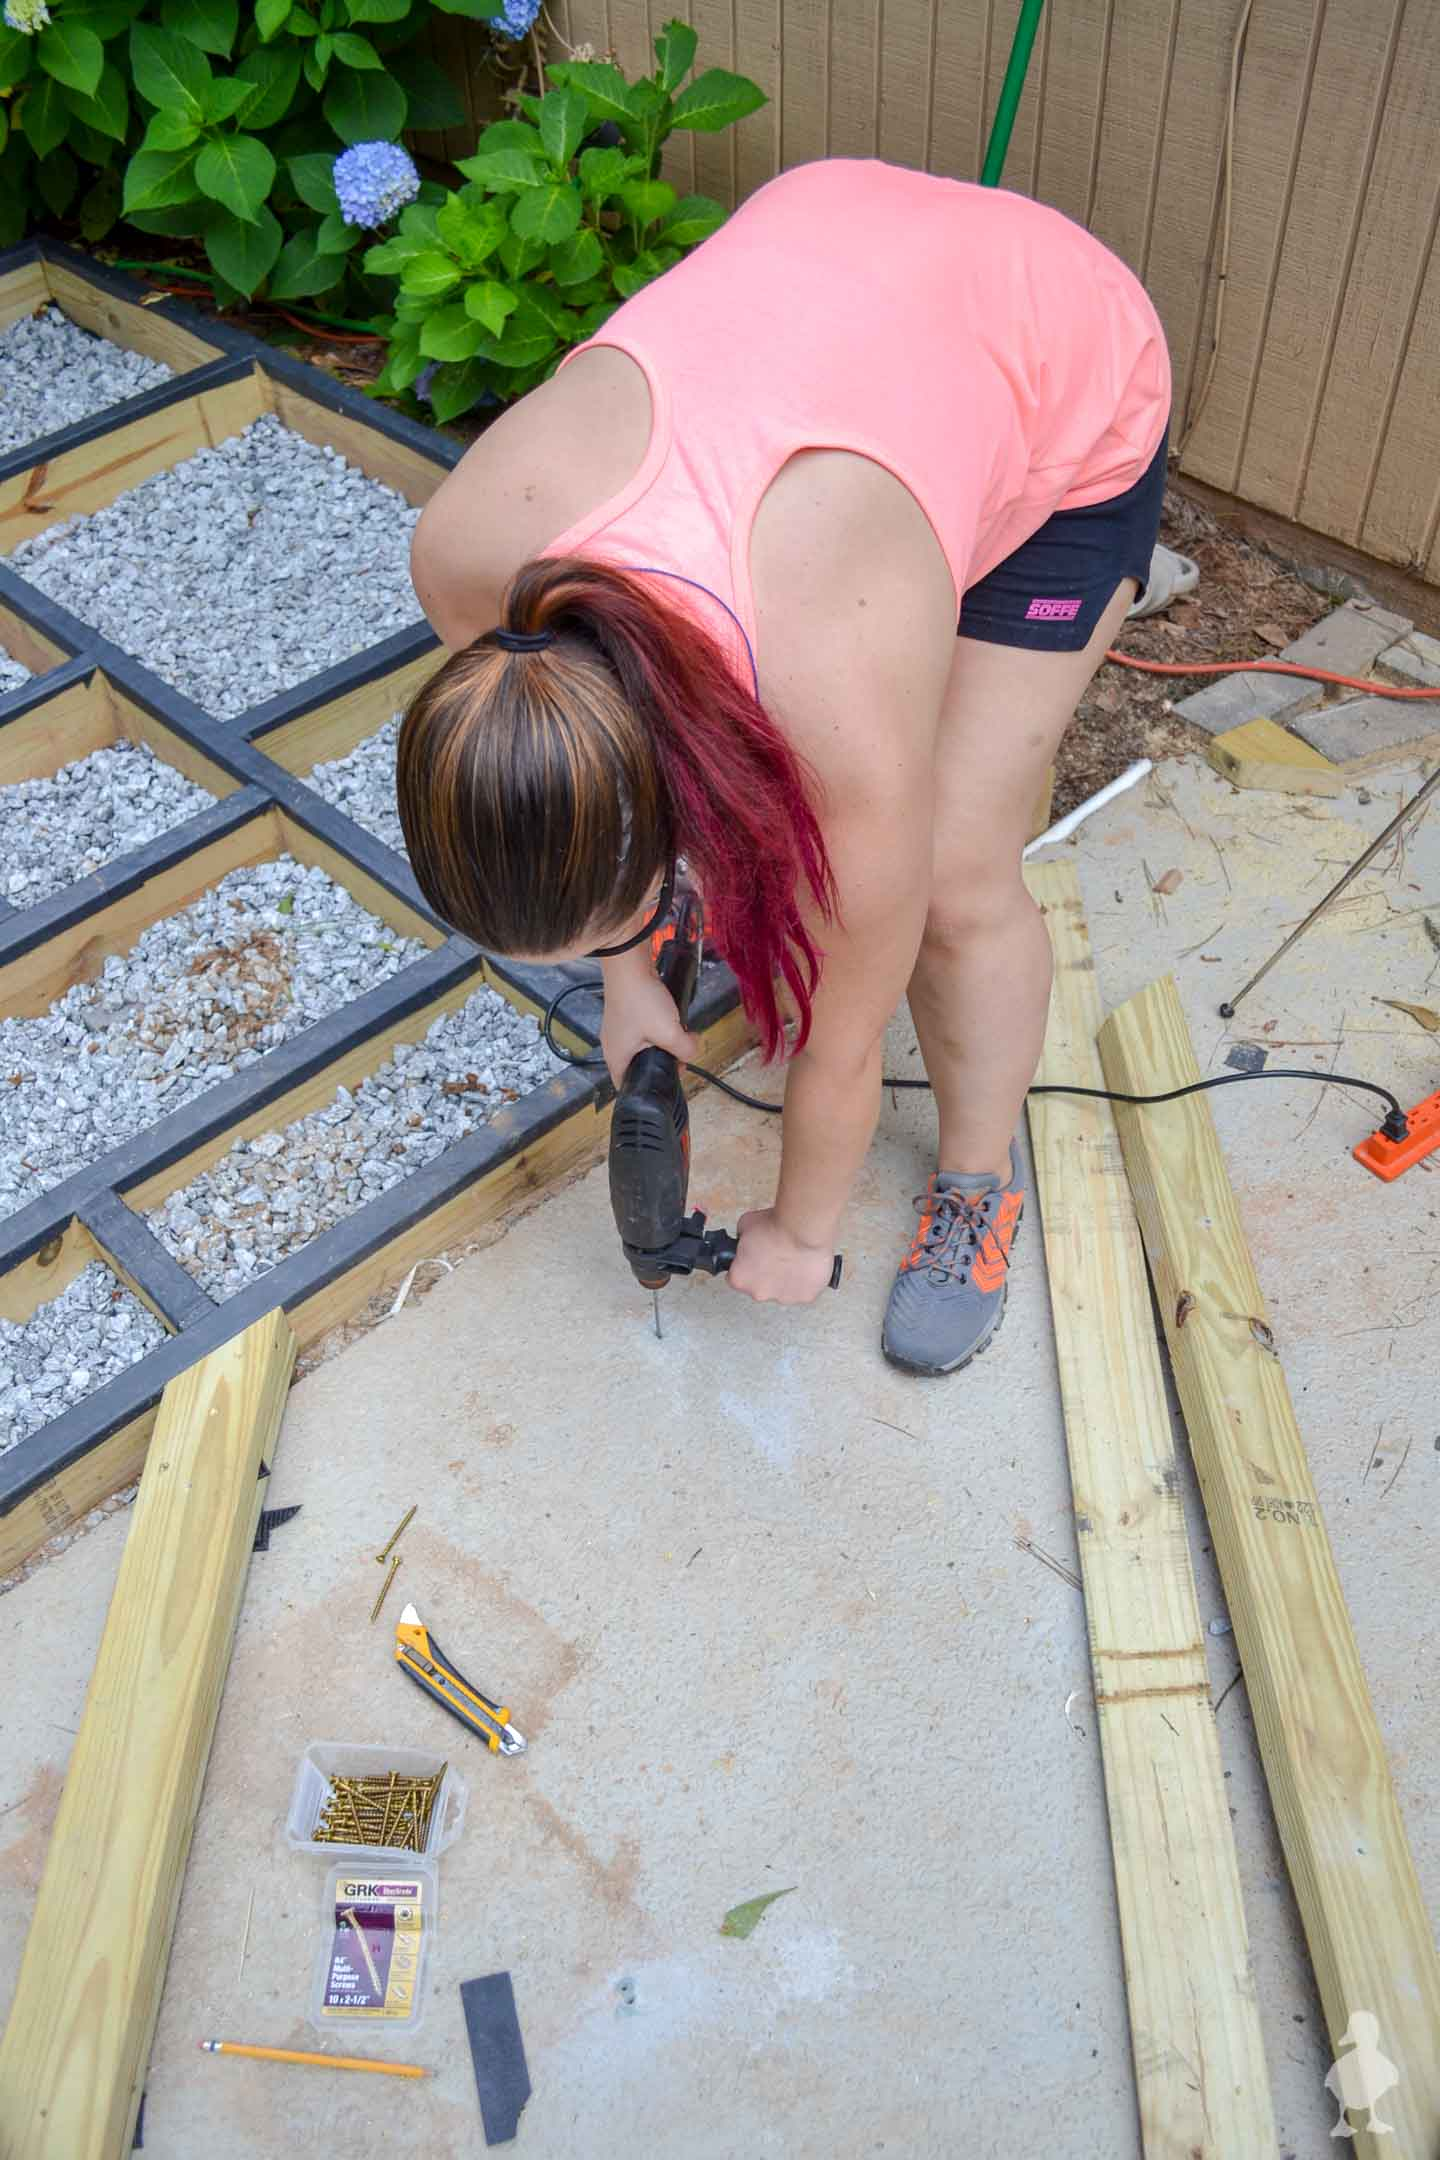 use hammer drill to drill into concrete patio